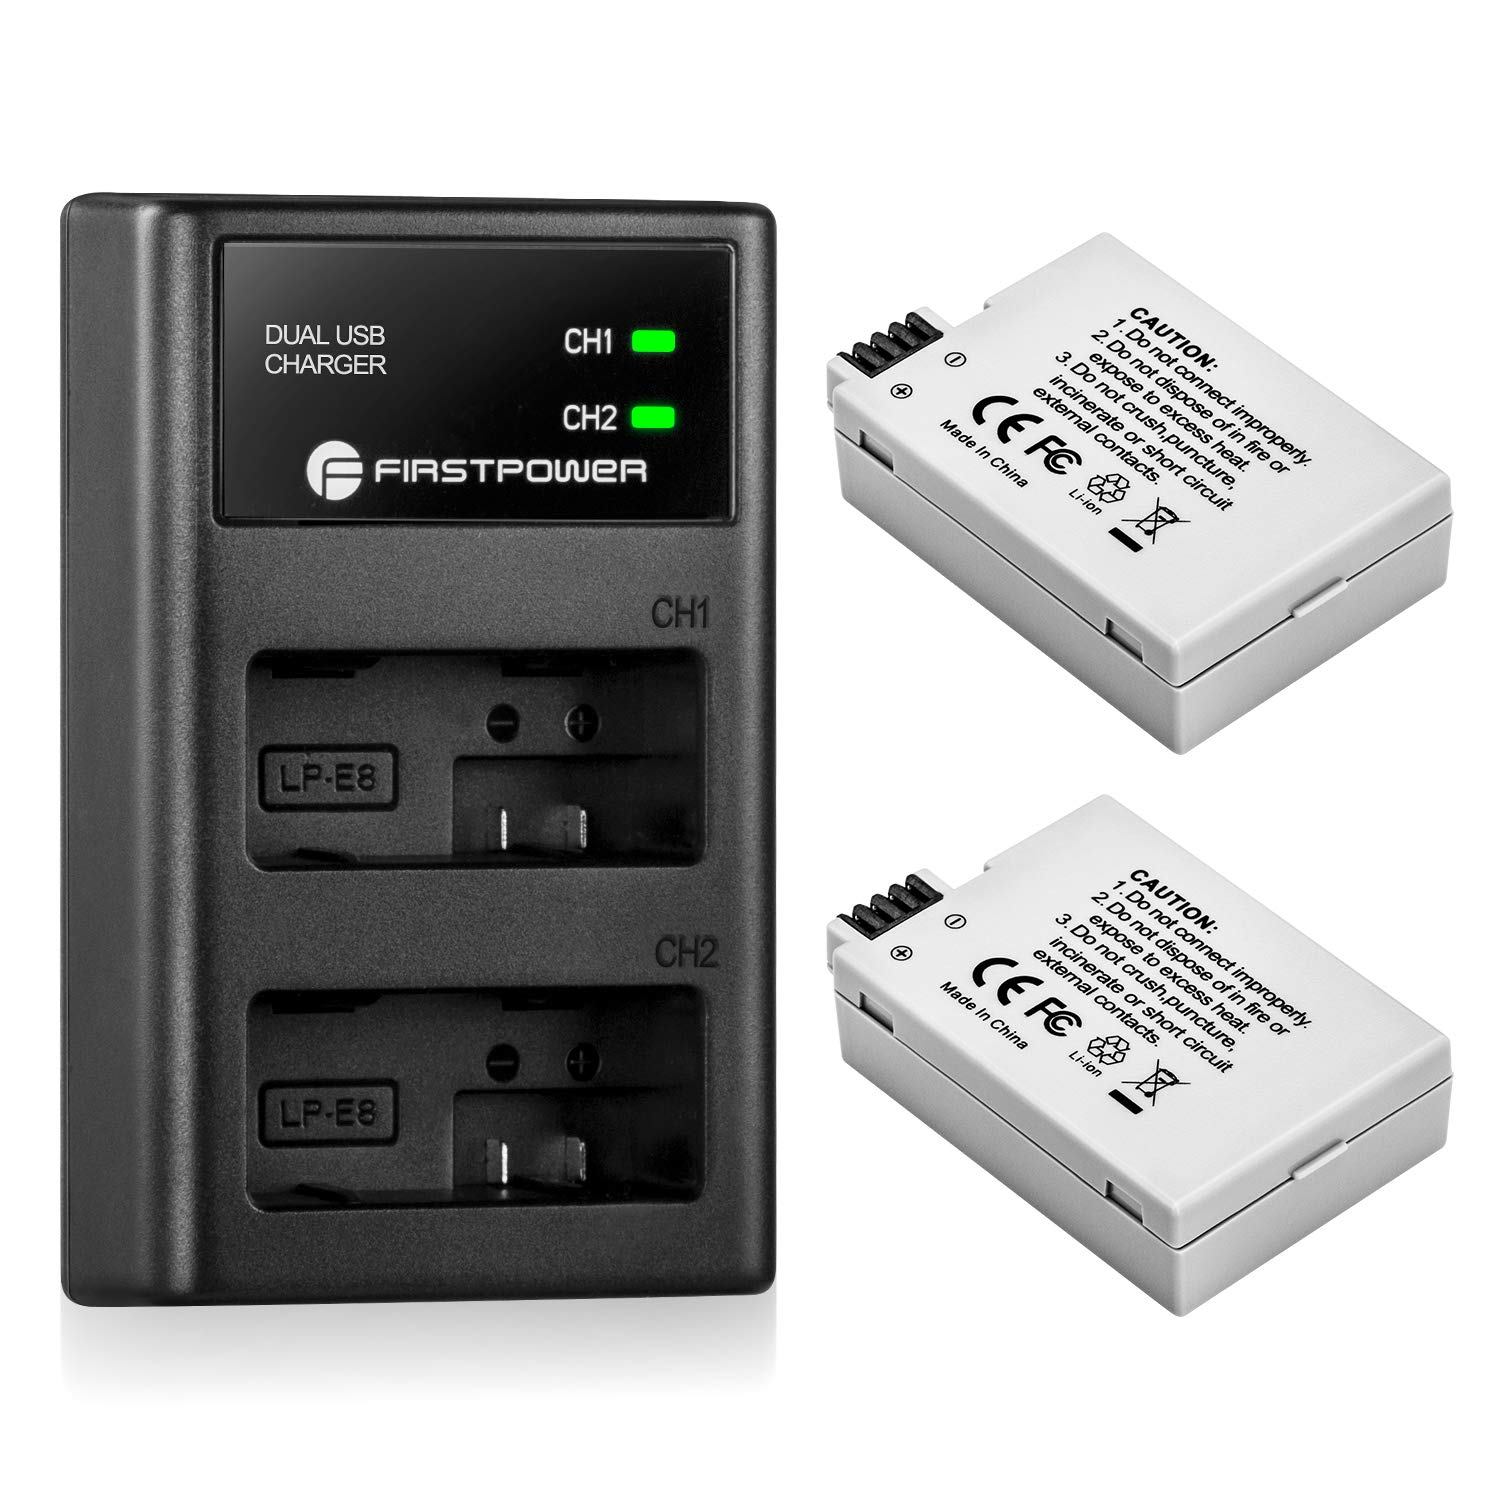 FirstPower LP-E8 Battery and Dual USB Charger for Canon EOS Rebel T3i, T2i, T4i, T5i, EOS 550D, 600D, 650D, 700D, Kiss X4, Kiss X5, Kiss X6 Cameras (2-Pack 1900mAh)